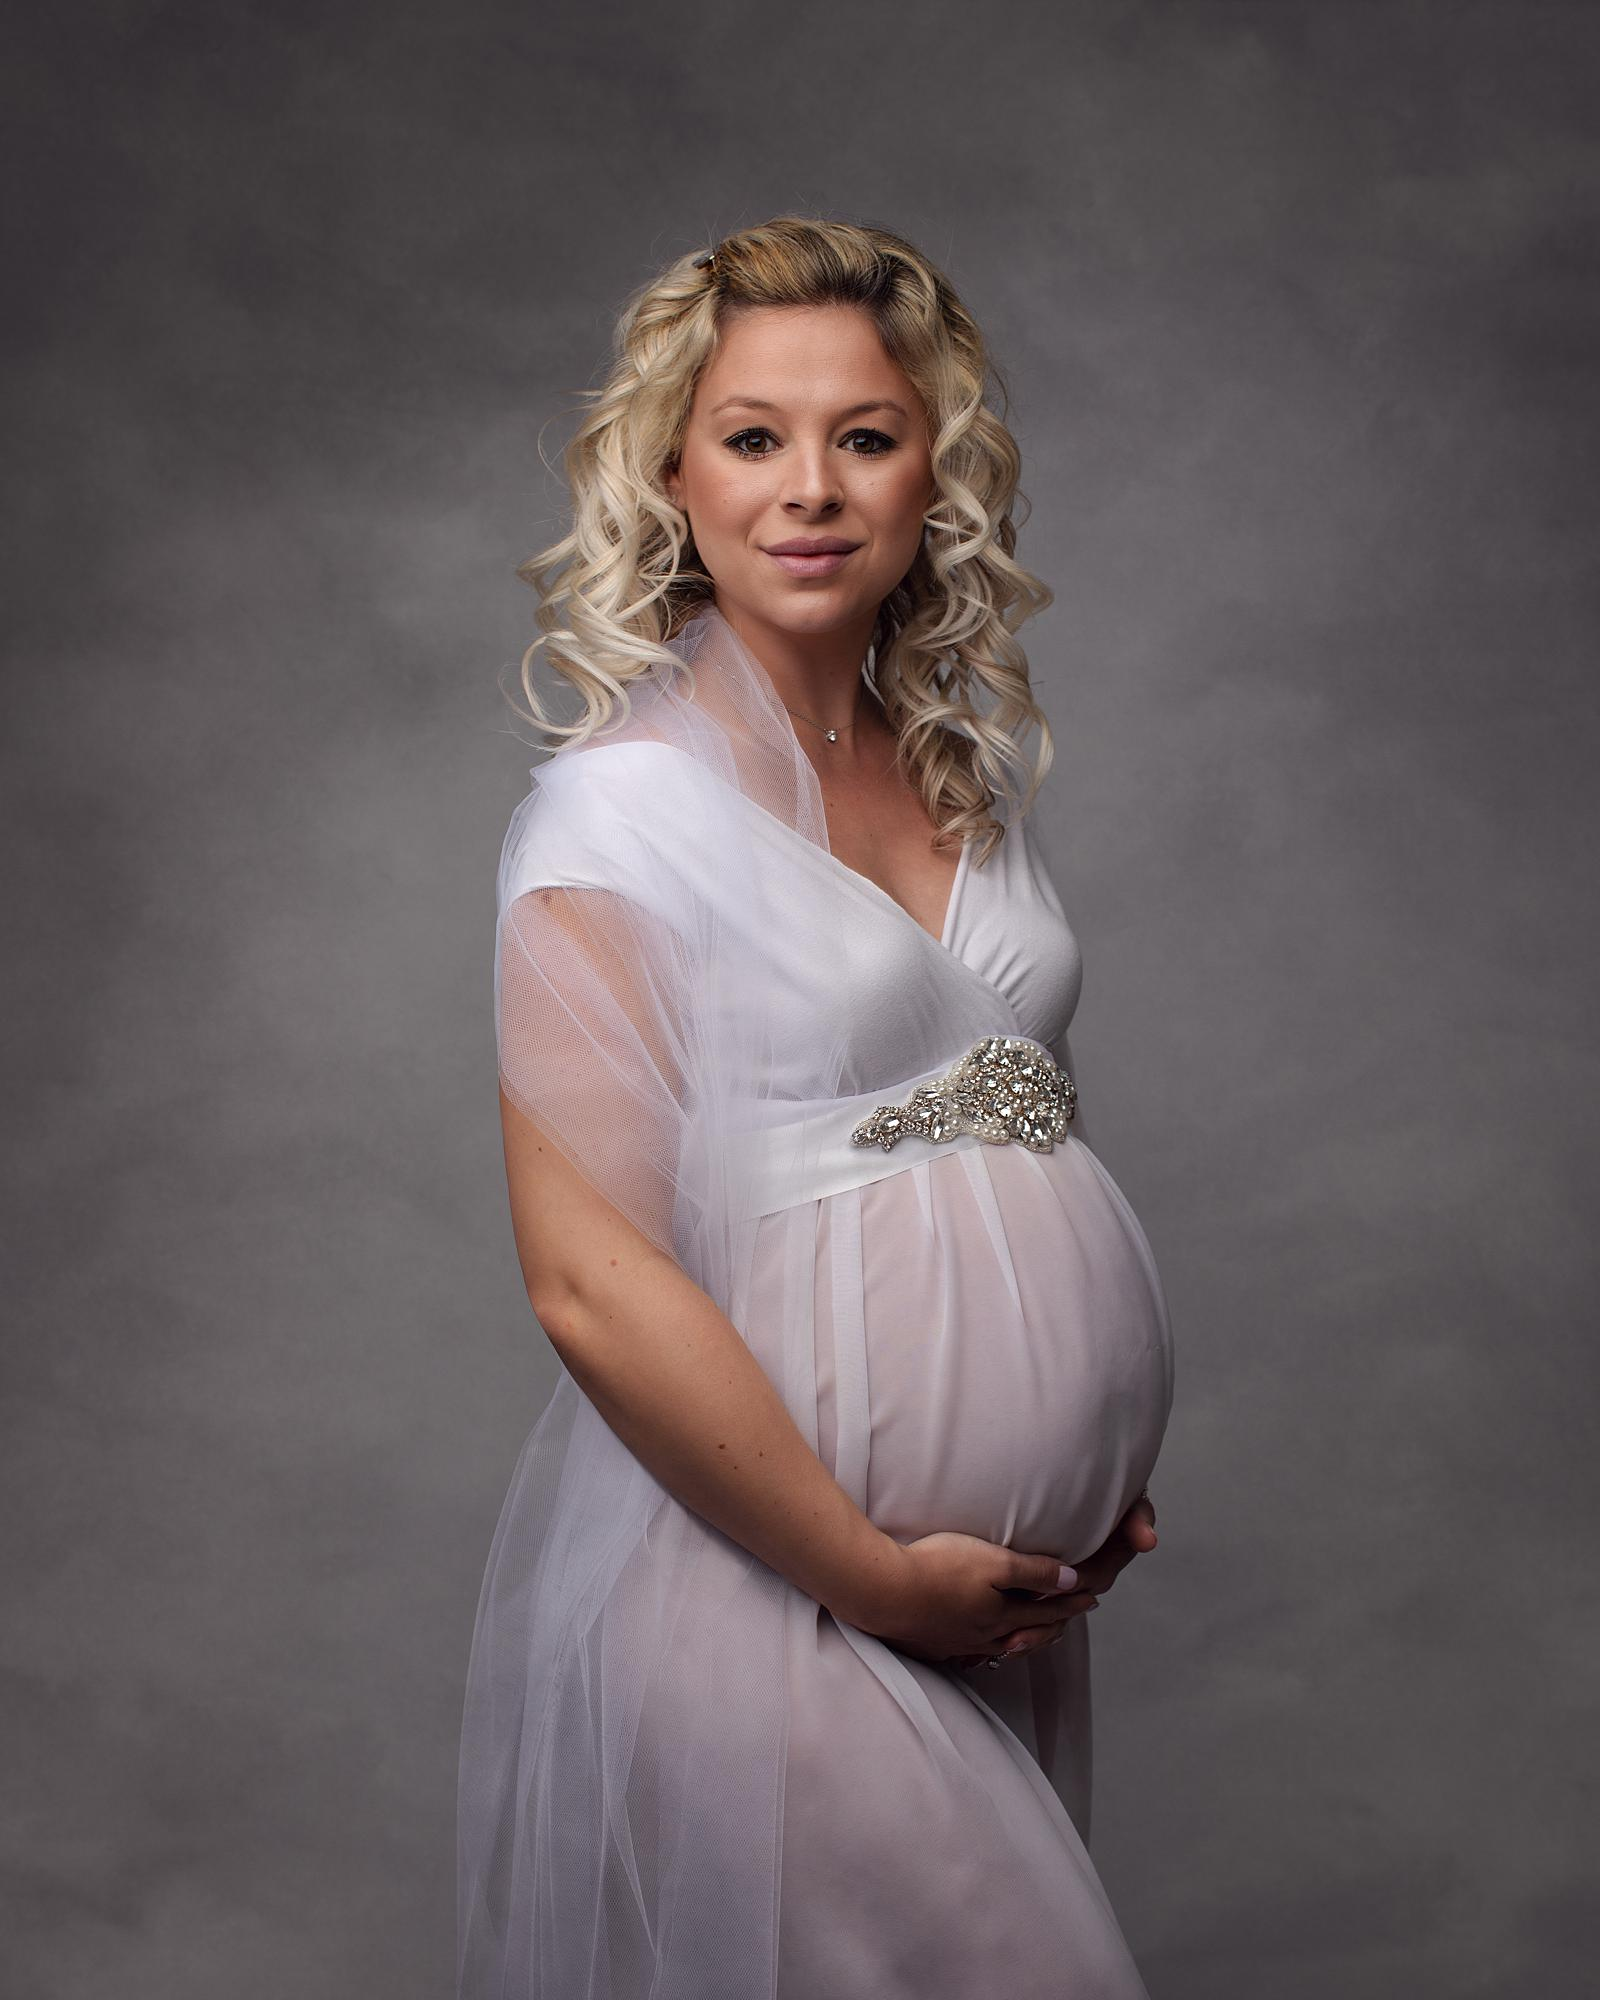 Pregnant woman posing in a white dress against a grey backdrop for a maternity photoshoot in Suffolk photography studio